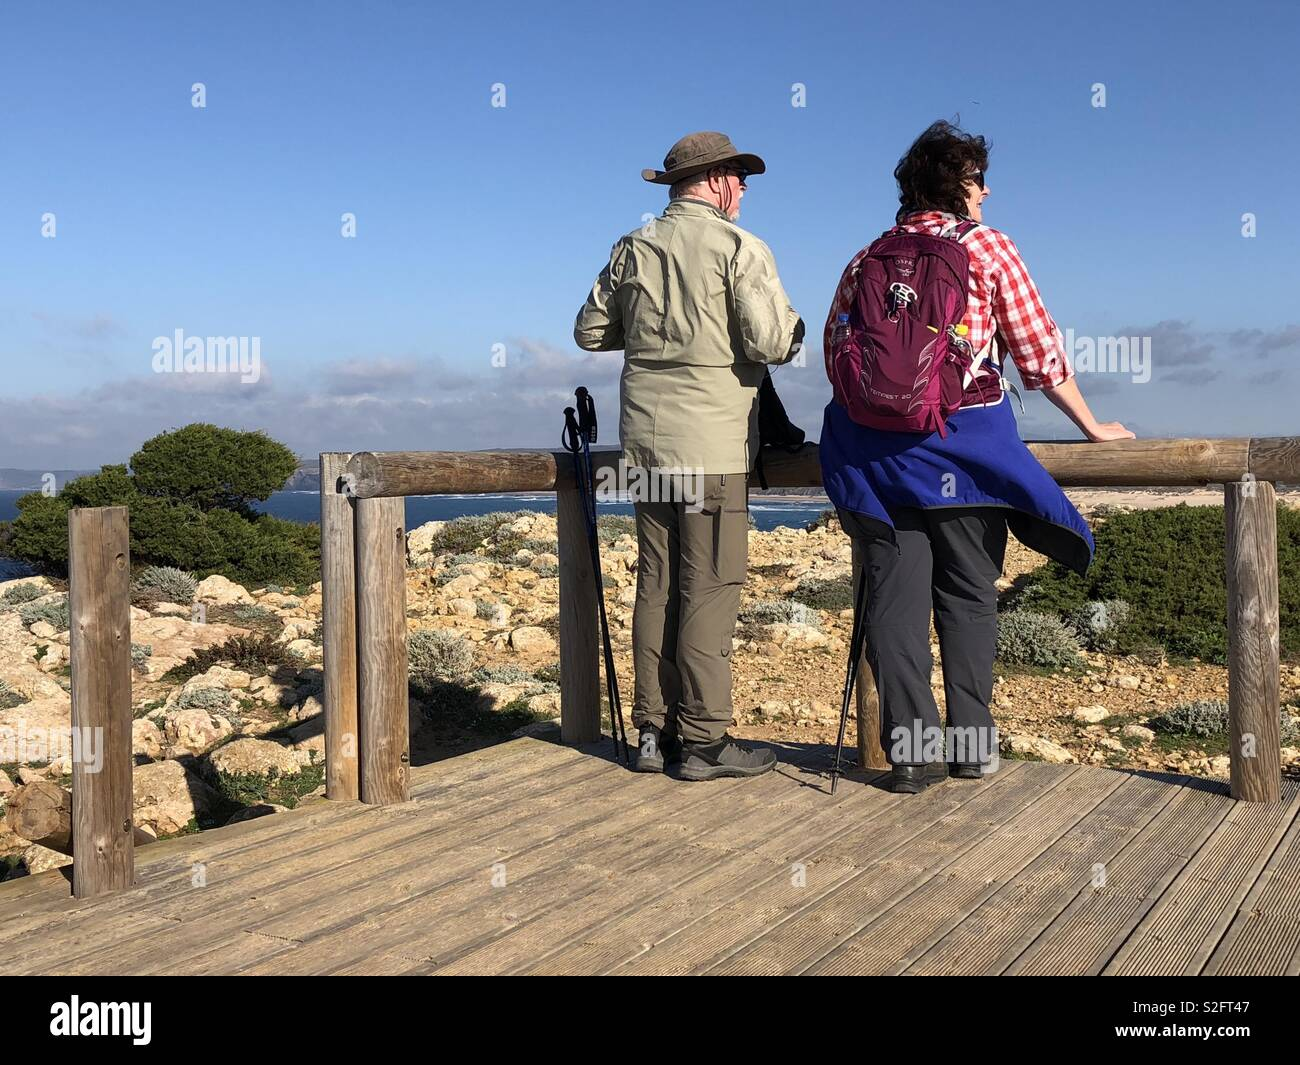 Two walkers at a look out point on the Pontal da Carrapareira trail on the Vincent's coast of Portugal - Stock Image